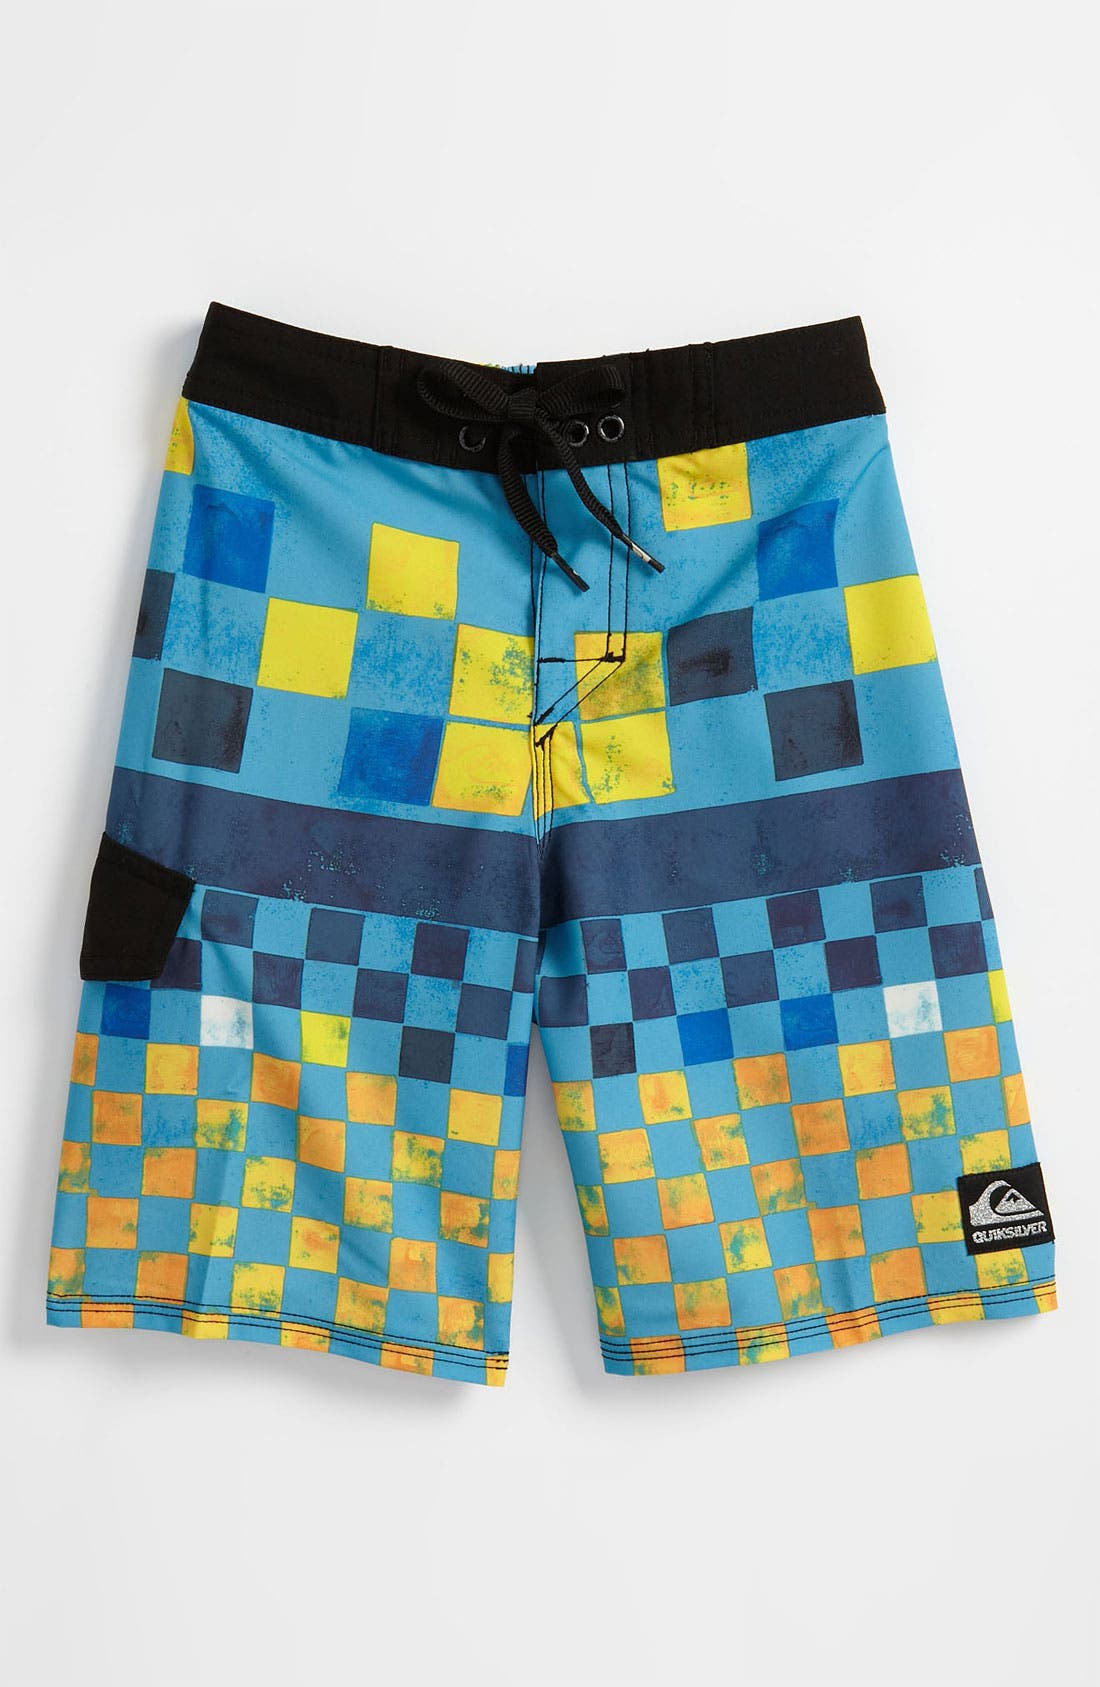 Alternate Image 1 Selected - Quiksilver 'DNA' Board Shorts (Little Boys)